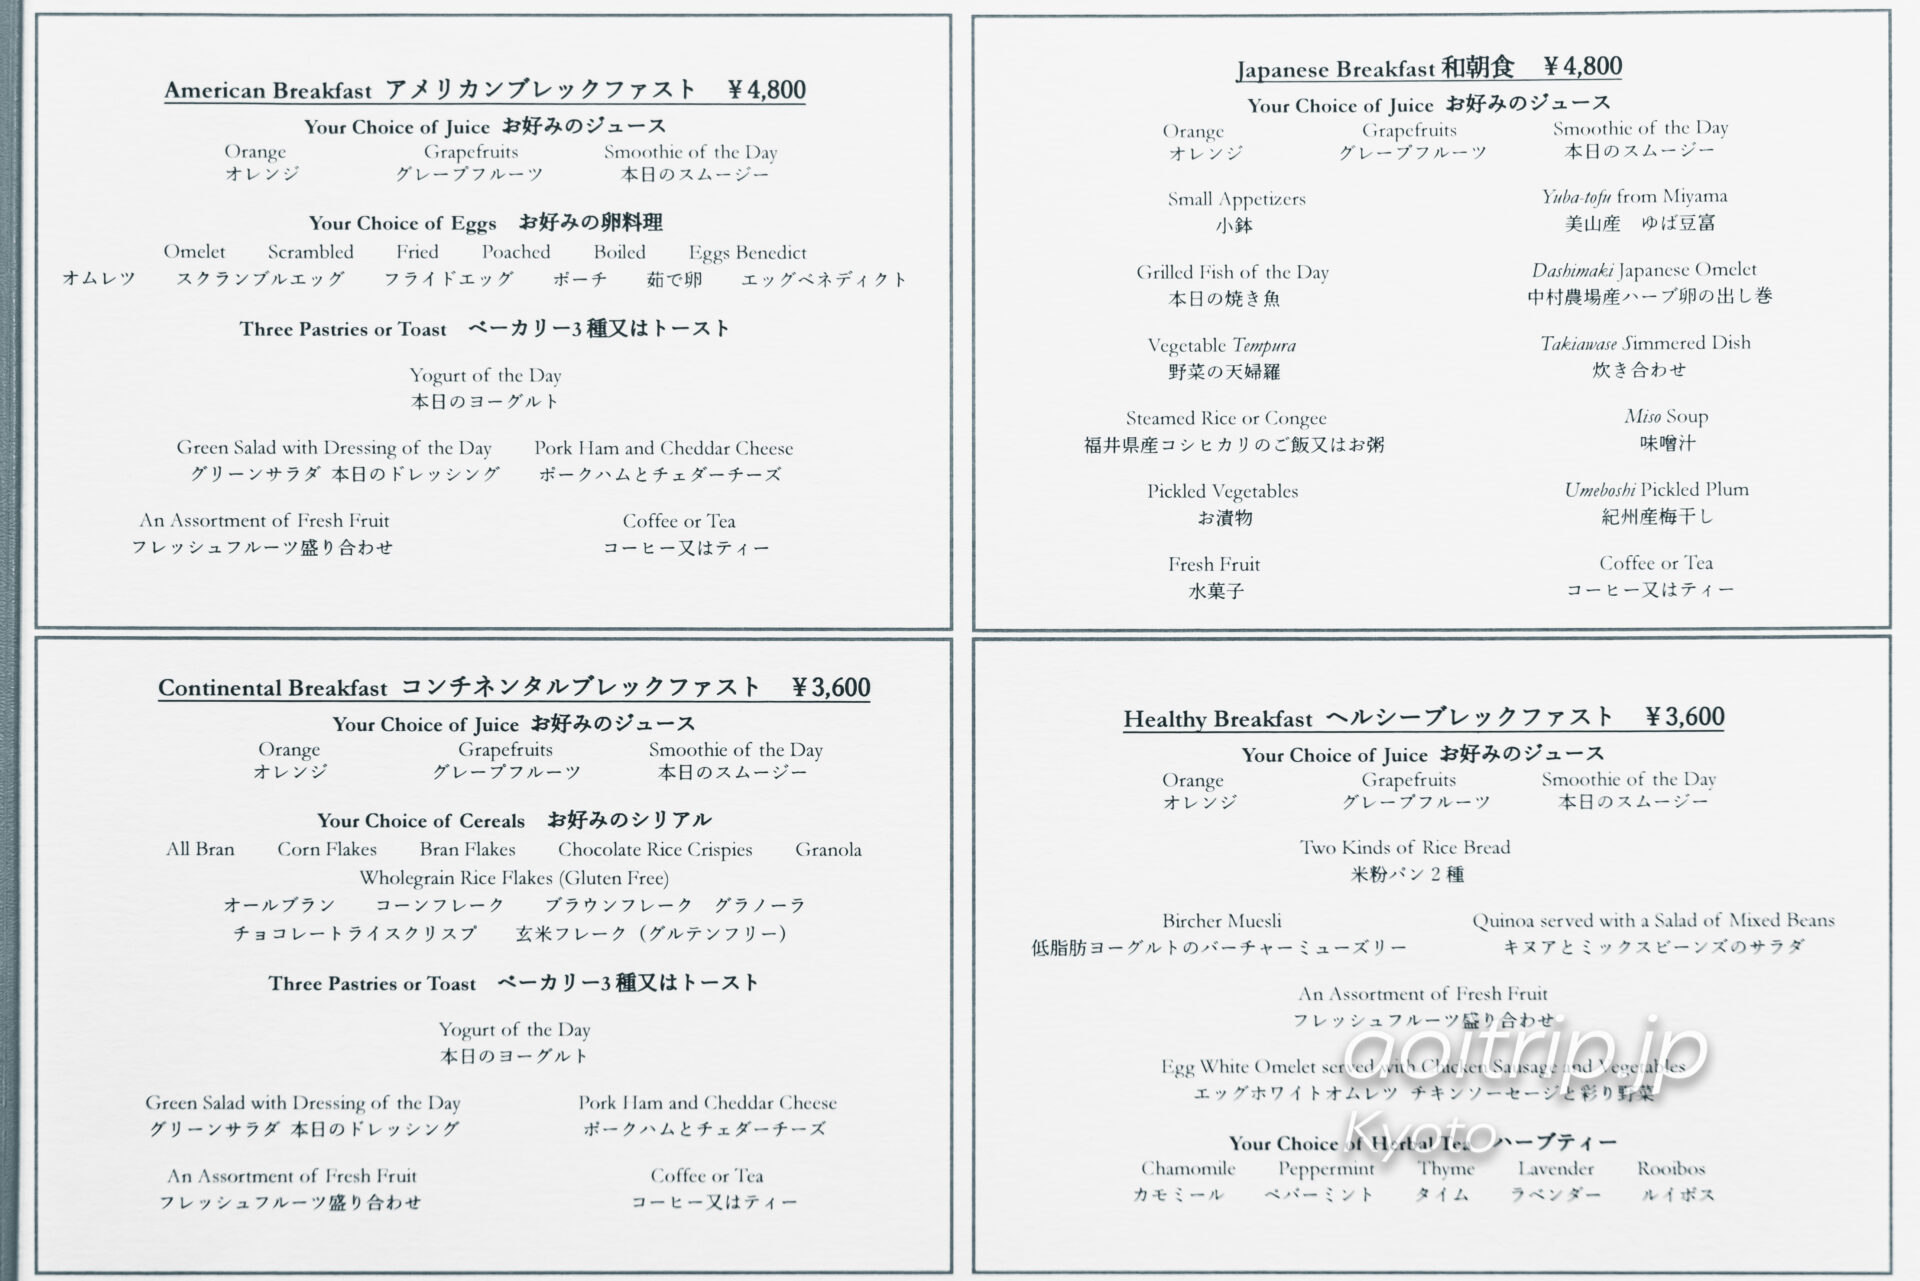 HOTEL THE MITSUI KYOTO, THE GARDEN BARの朝食メニュー